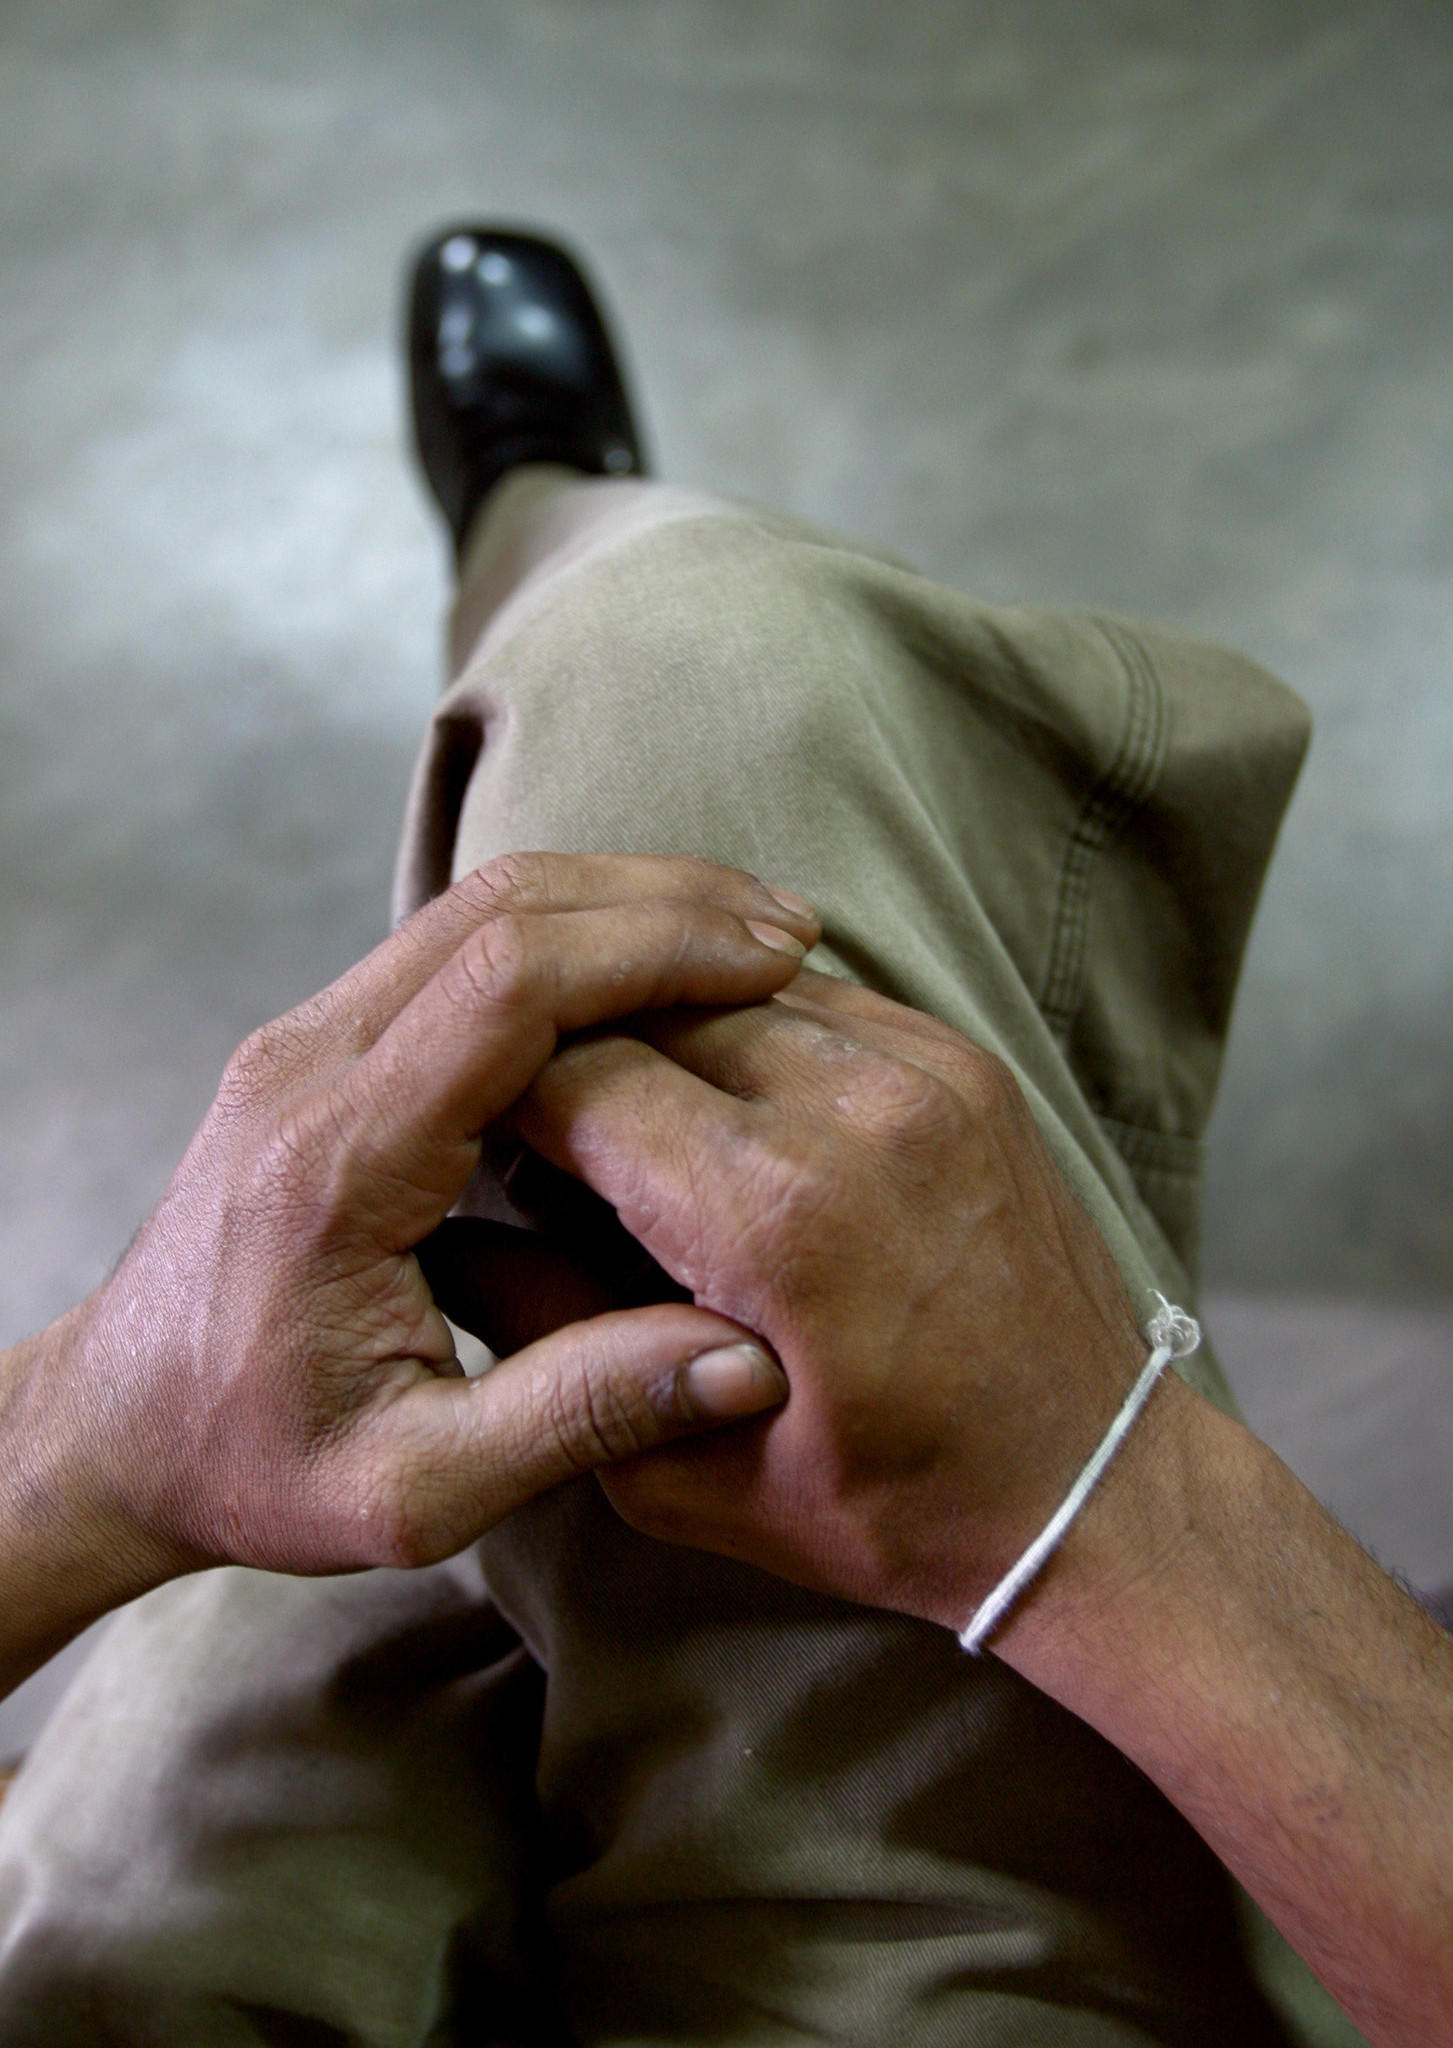 Then-Sri Lankan hangman Suranimala clasps his hands as he talks to Reuters about the reintroduction of the death penalty at a Walikada prison in Colombo, Sri Lanka in this picture taken December 6, 2004. In 2014 Sri Lanka is searching for a new hangman, as the most recent hire quit after seeing the gallows for the first time.